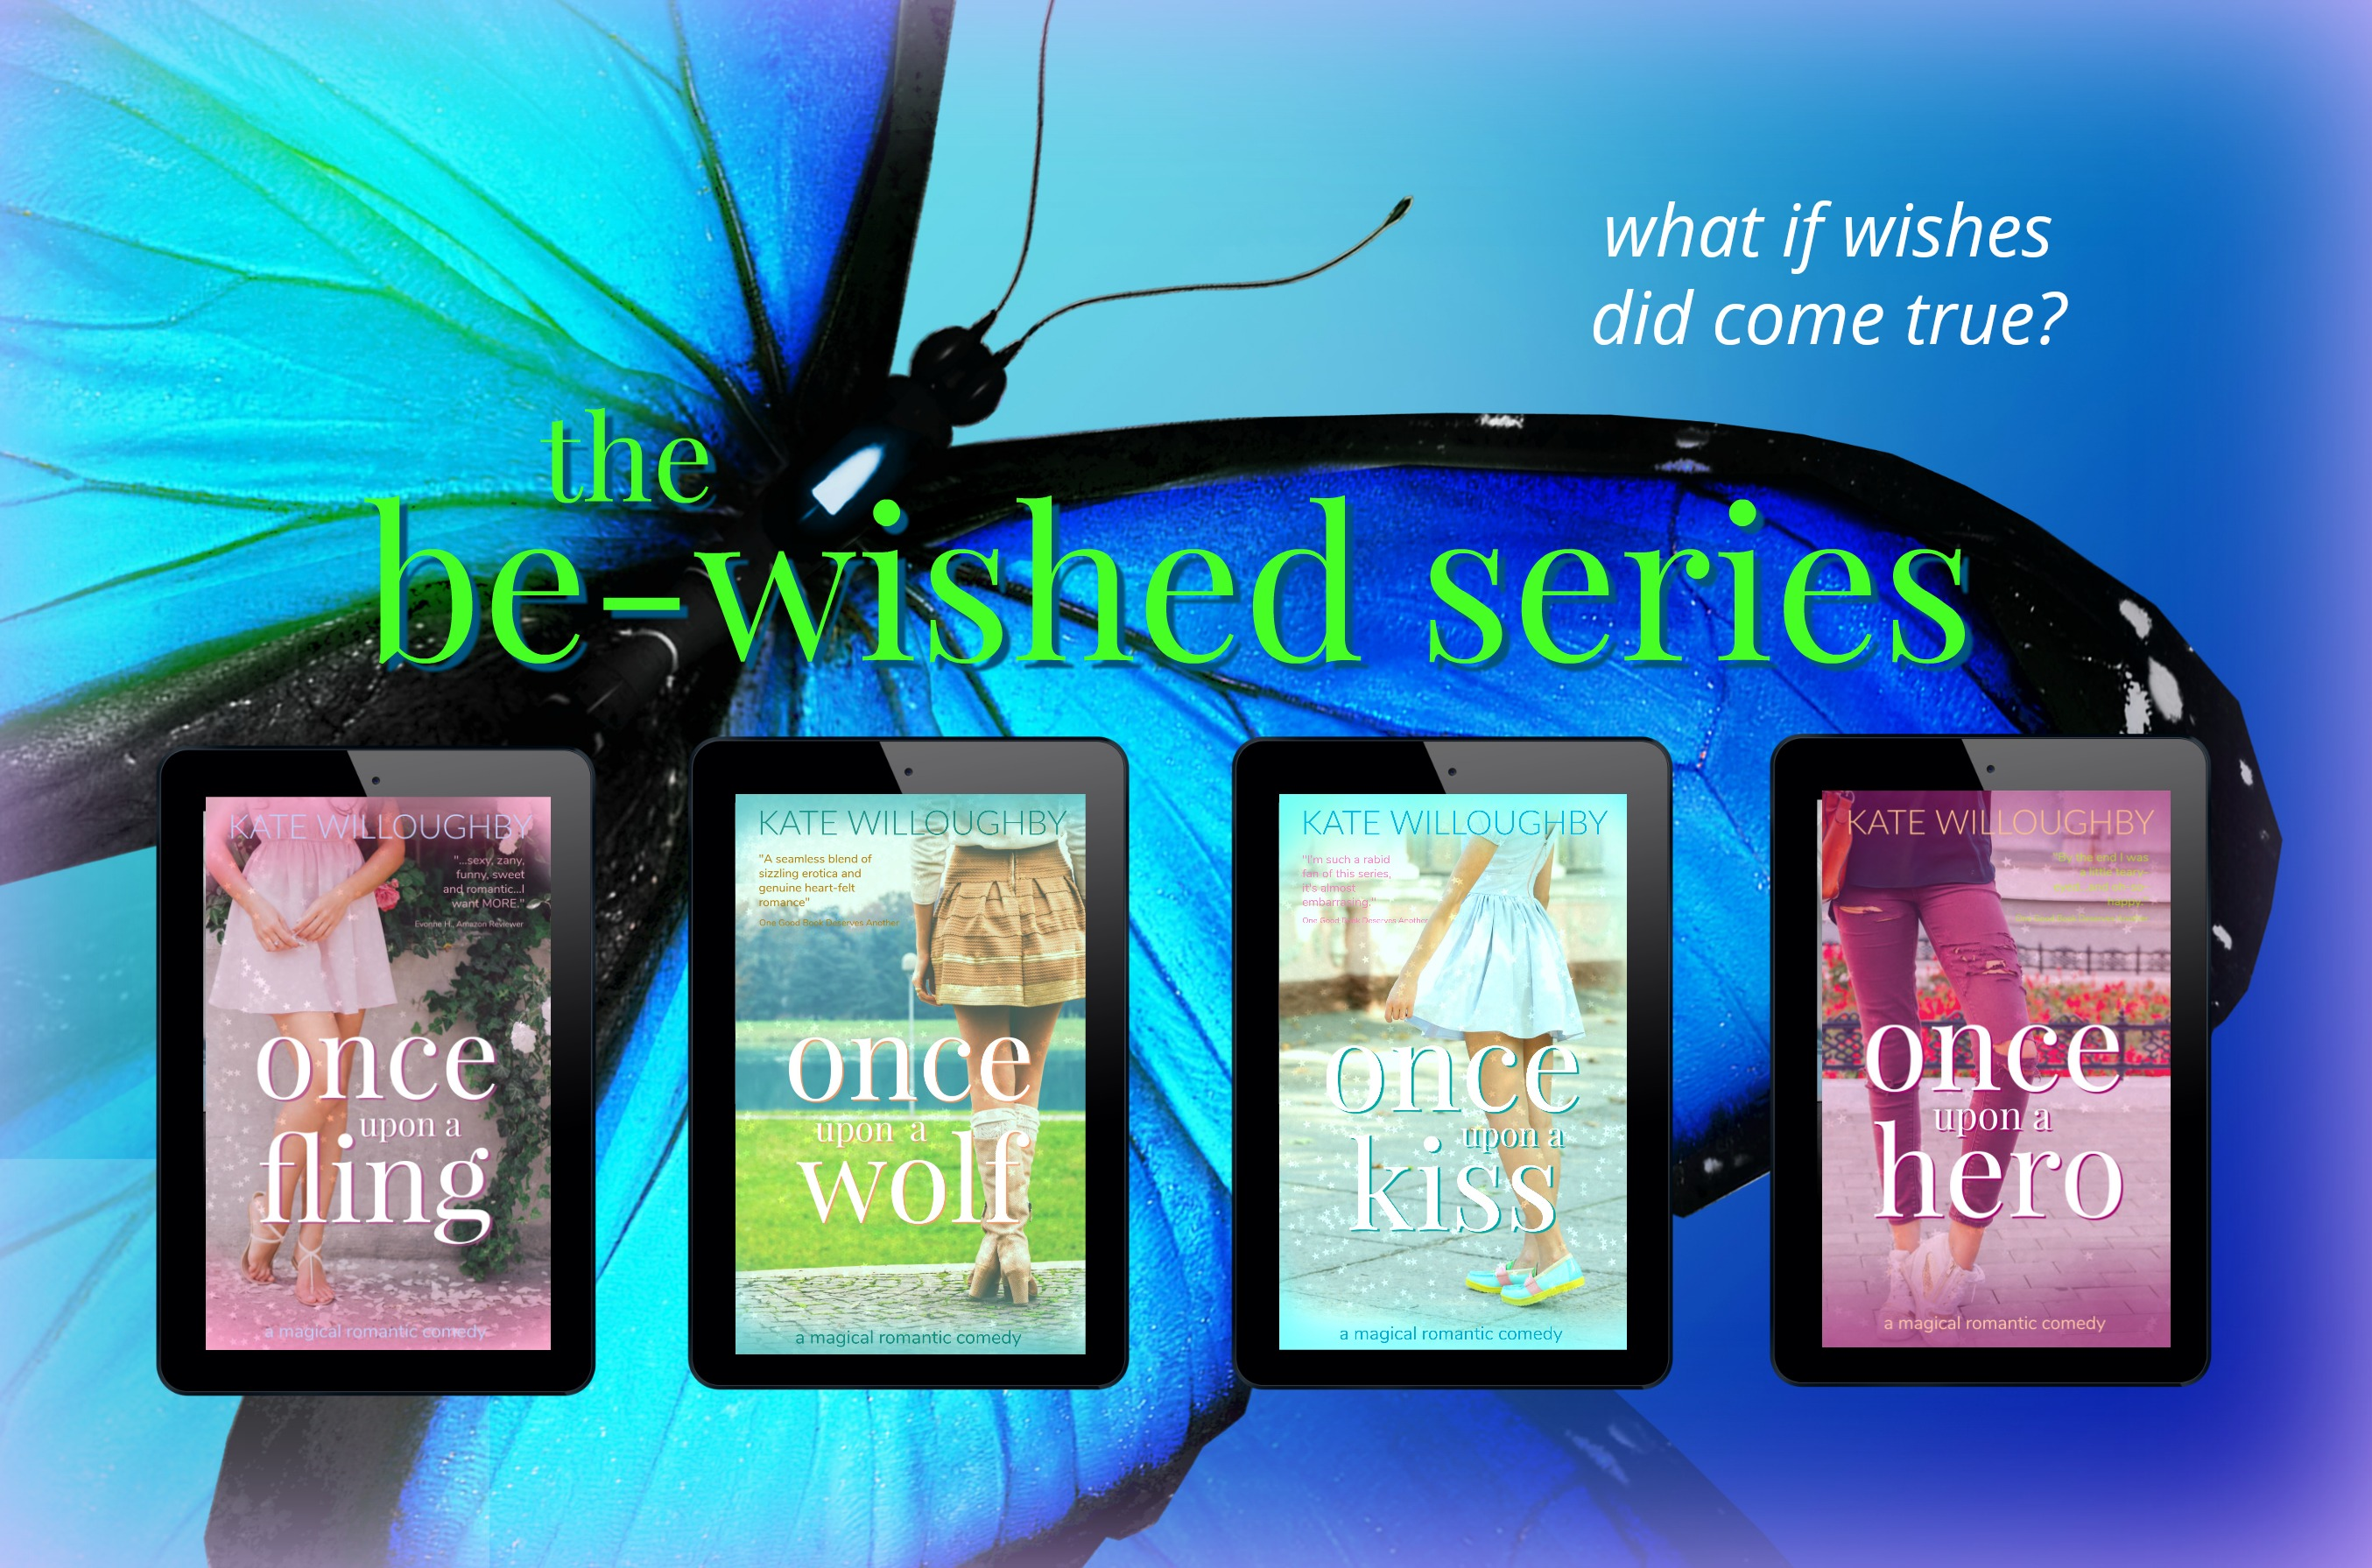 Kate Willoughby – Award-winning author of contemporary romance